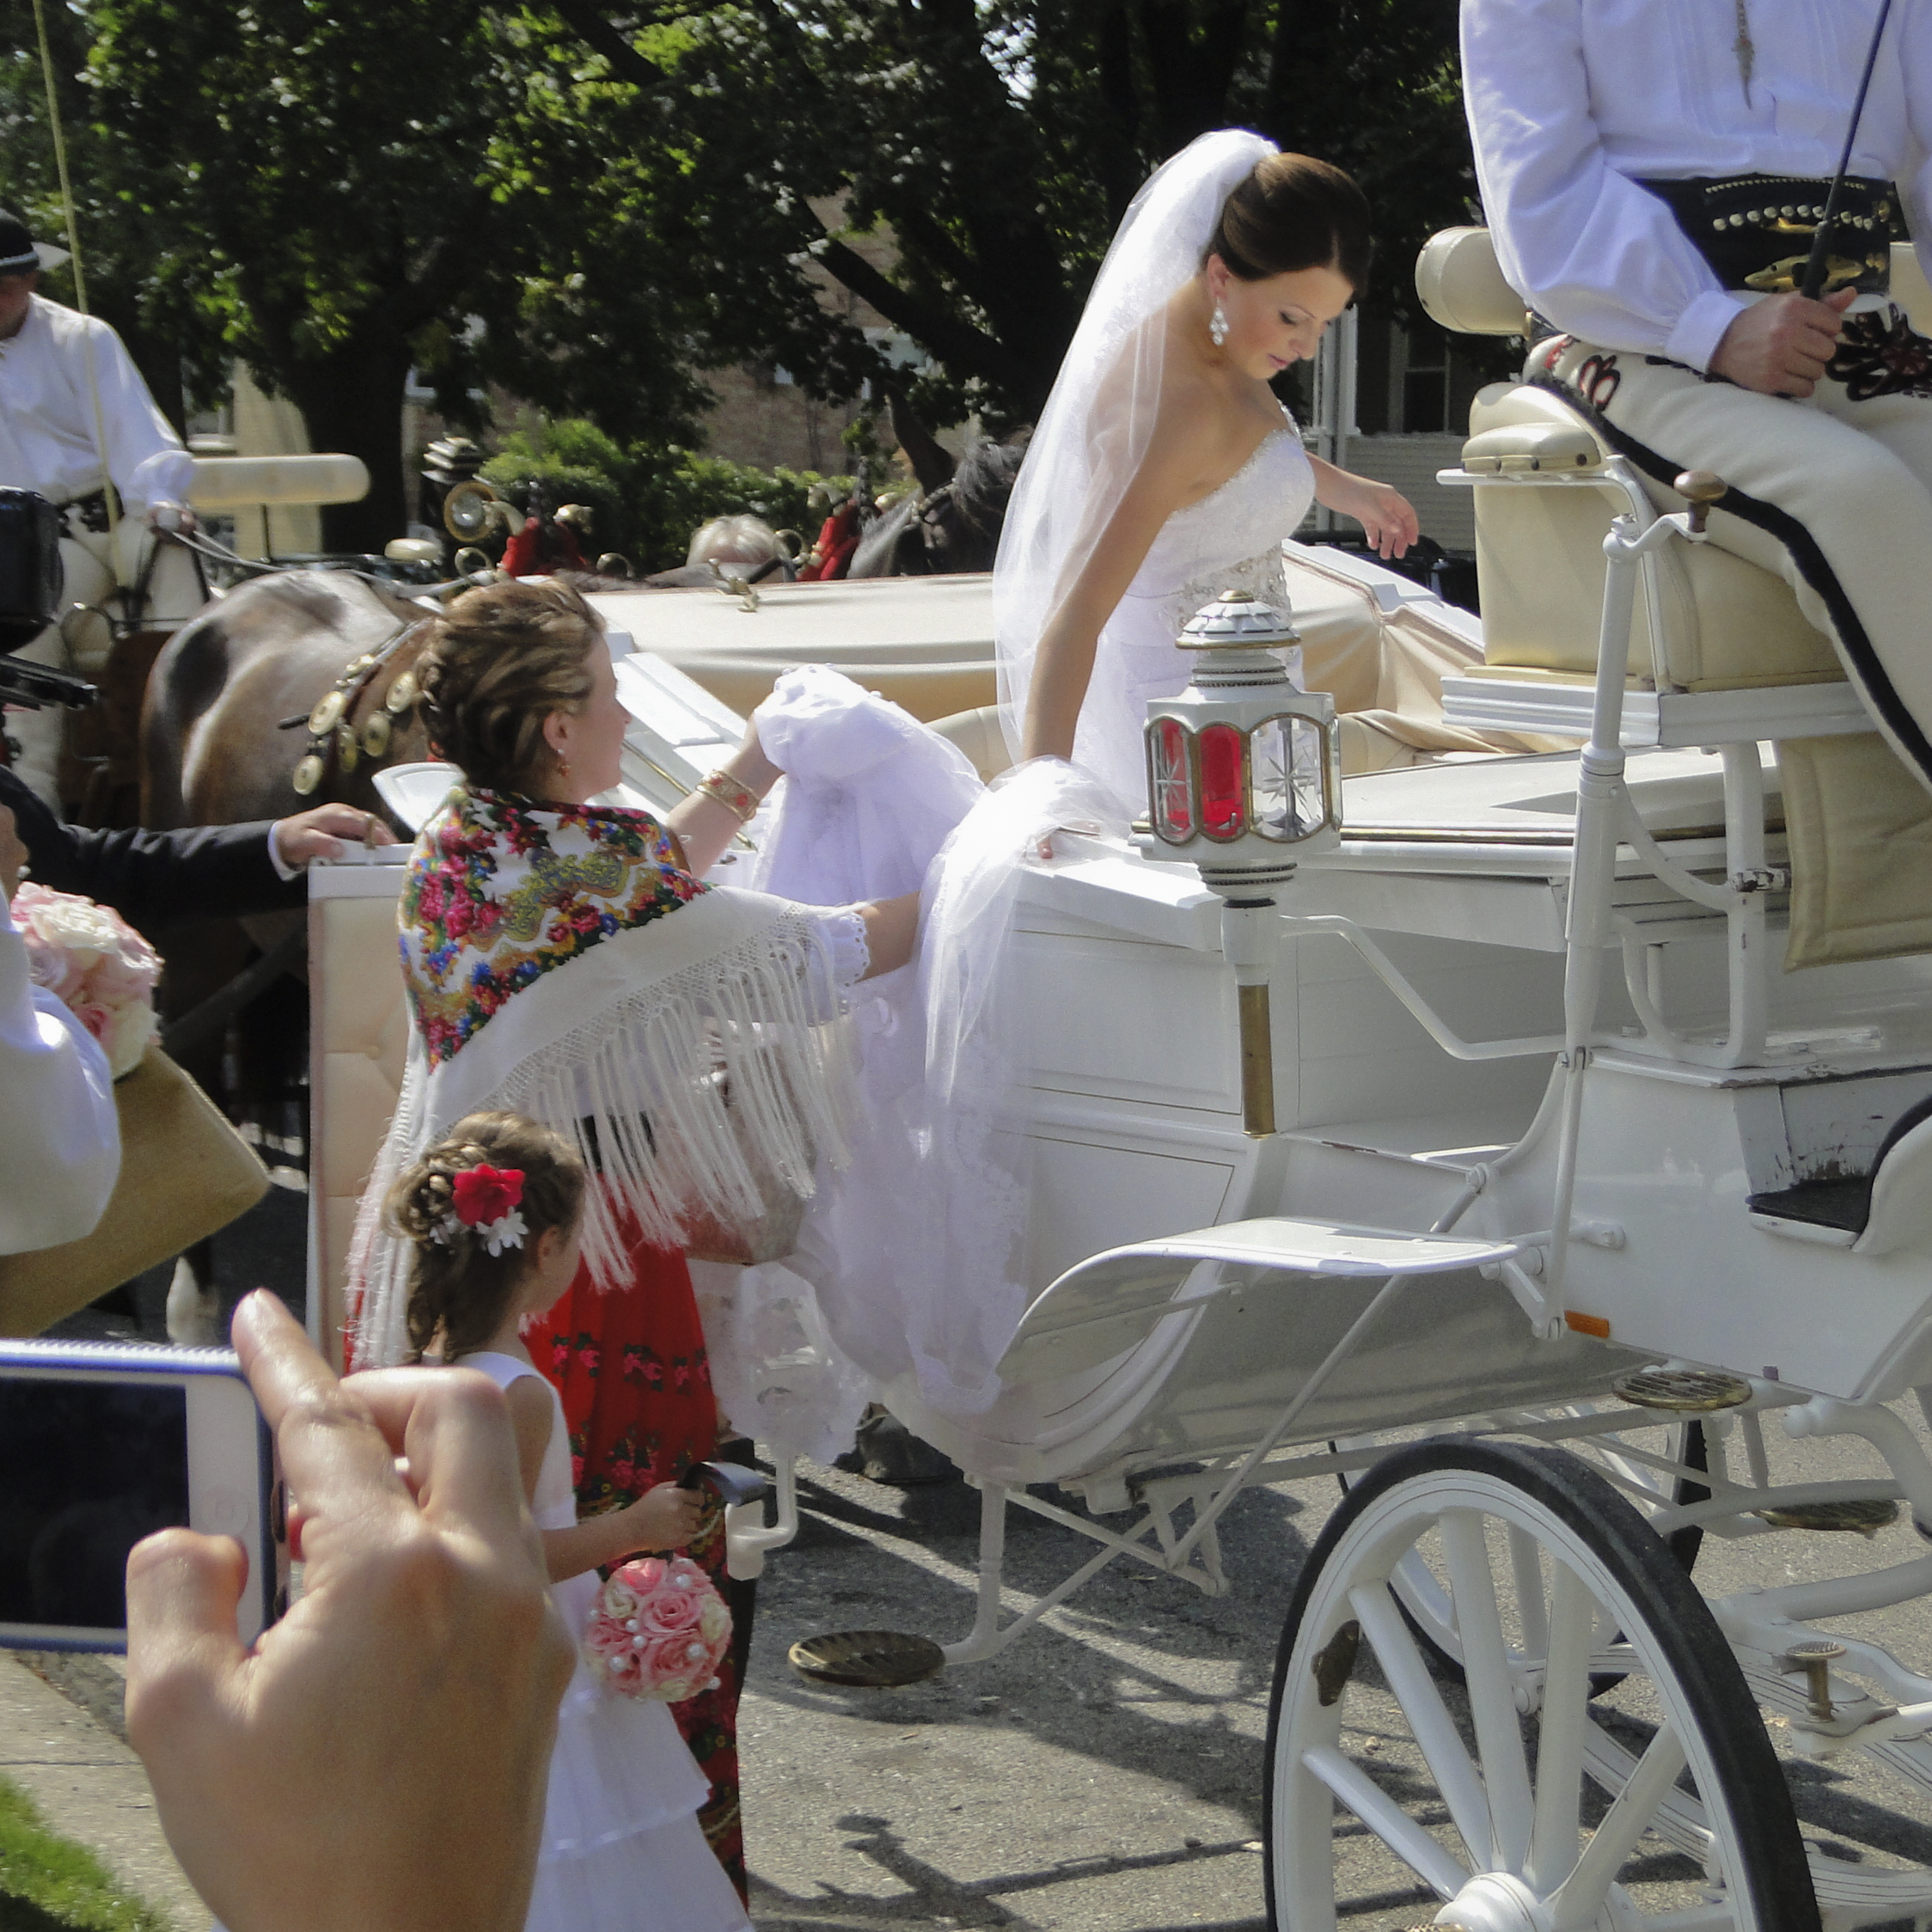 The bride's sister helps her into a carriage after the couple receives their blessings. Renee Stella Zieba and Michael John Livernois were married in Chicago.